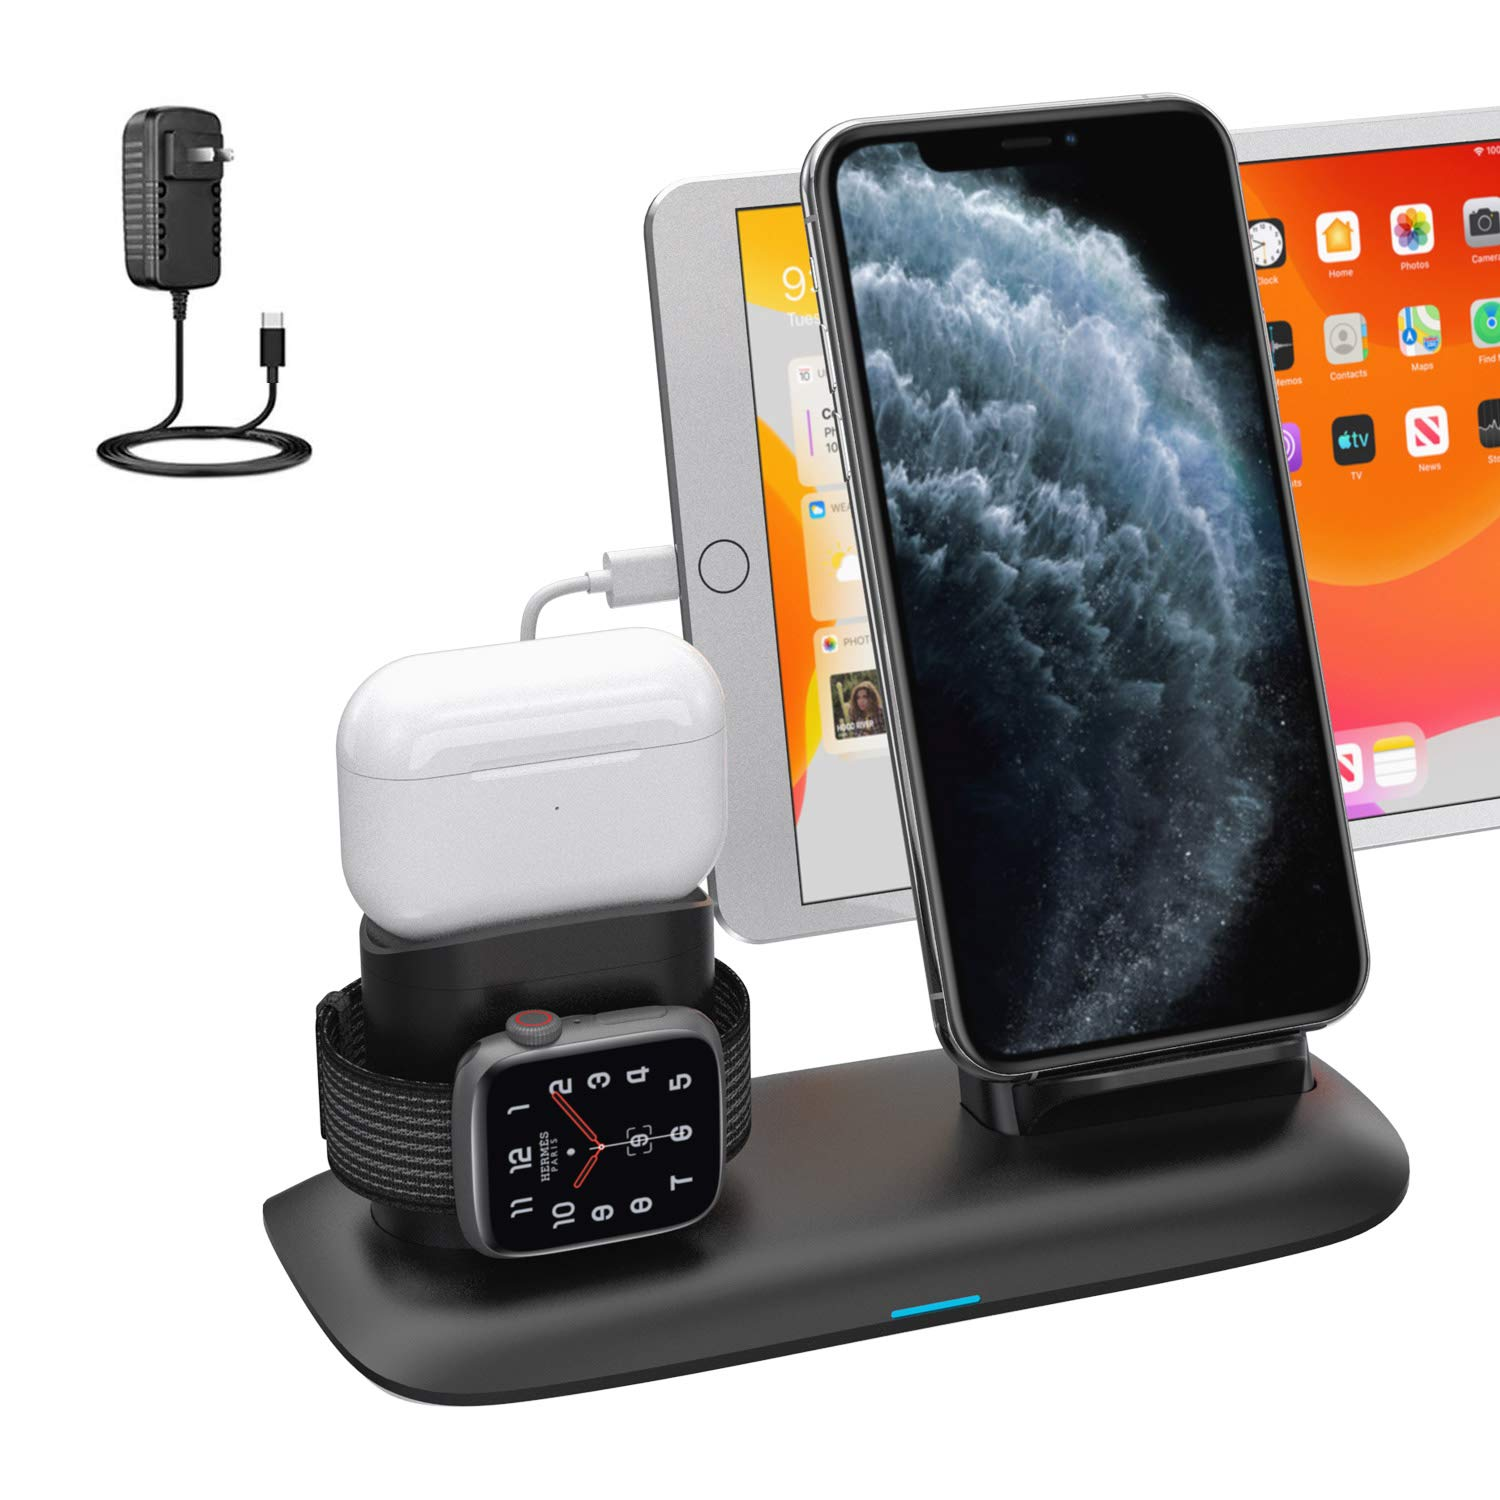 Amazon Com Wireless Charger 4 In 1 Wireless Charging Station For Ipad Apple Watch And Iphone Airpods Pro Wireless Charging Stand For Iphone 11 11 Pro Max X Xr Xs 8 Plus Apple Watch Charger 5 4 3